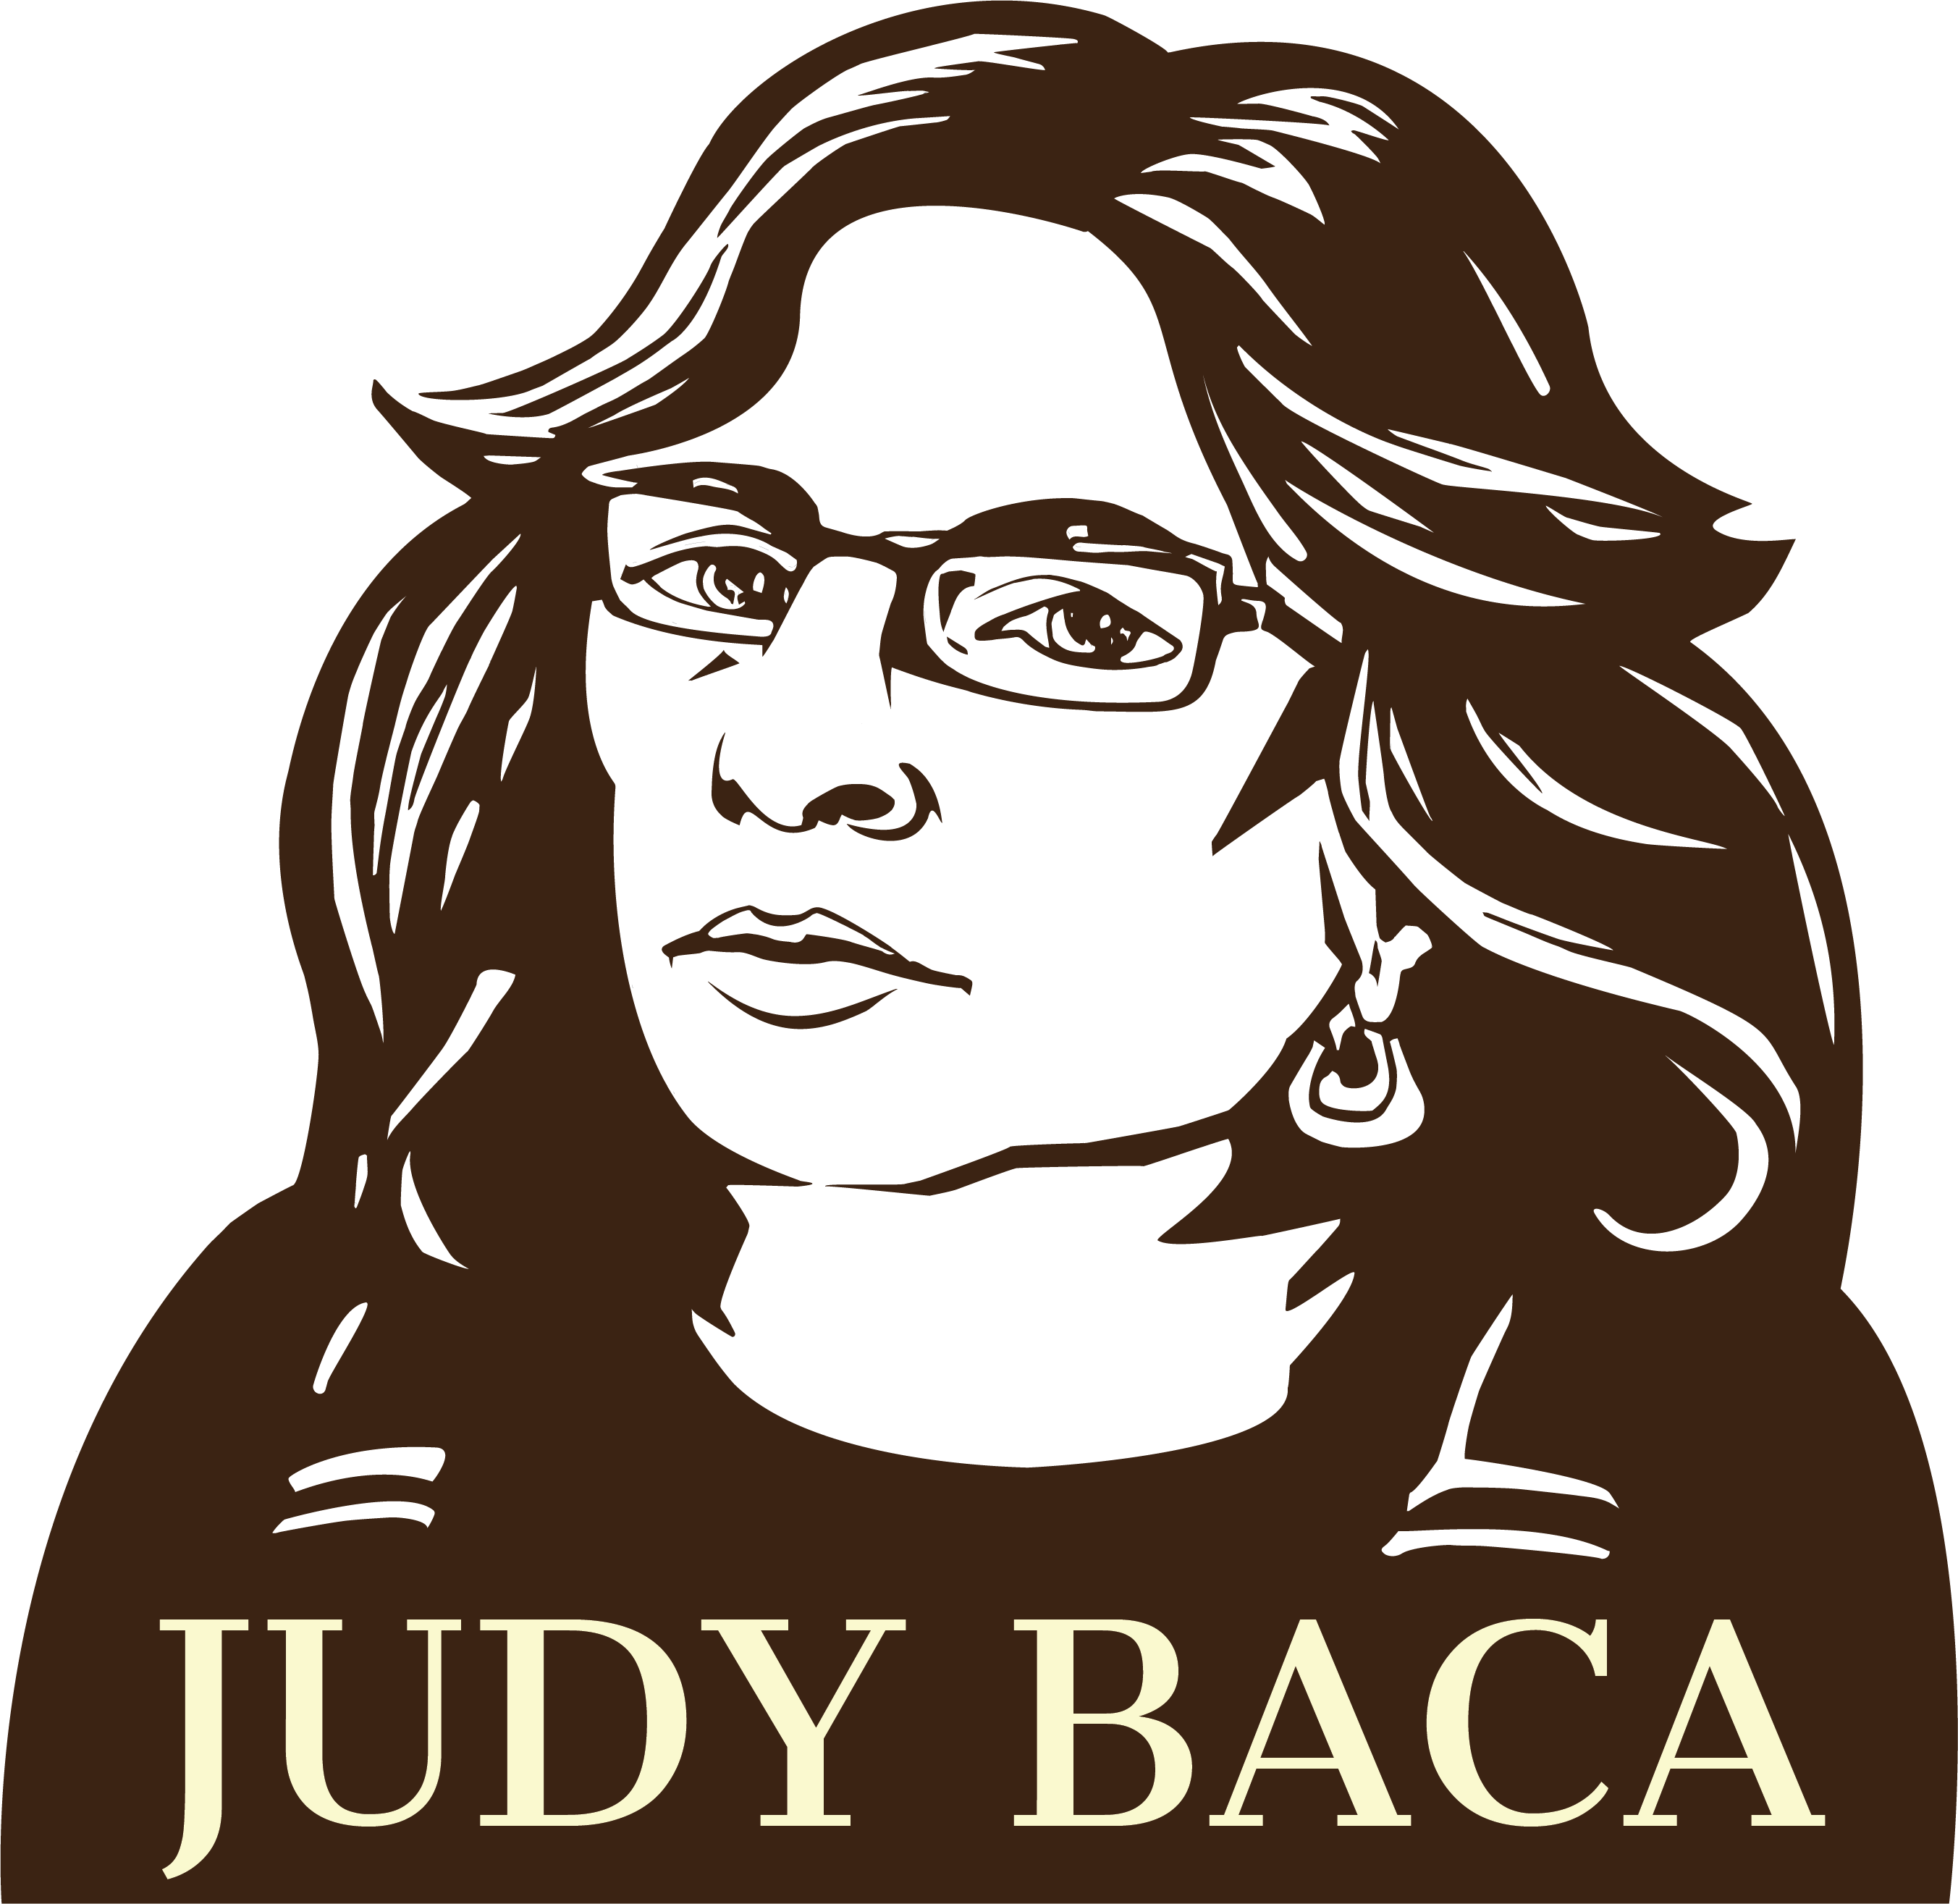 judy bacas art for peace Free essay: an inspiration across cultures public art conquers so much more than the simple task of making the street a little easier to look at it involves.